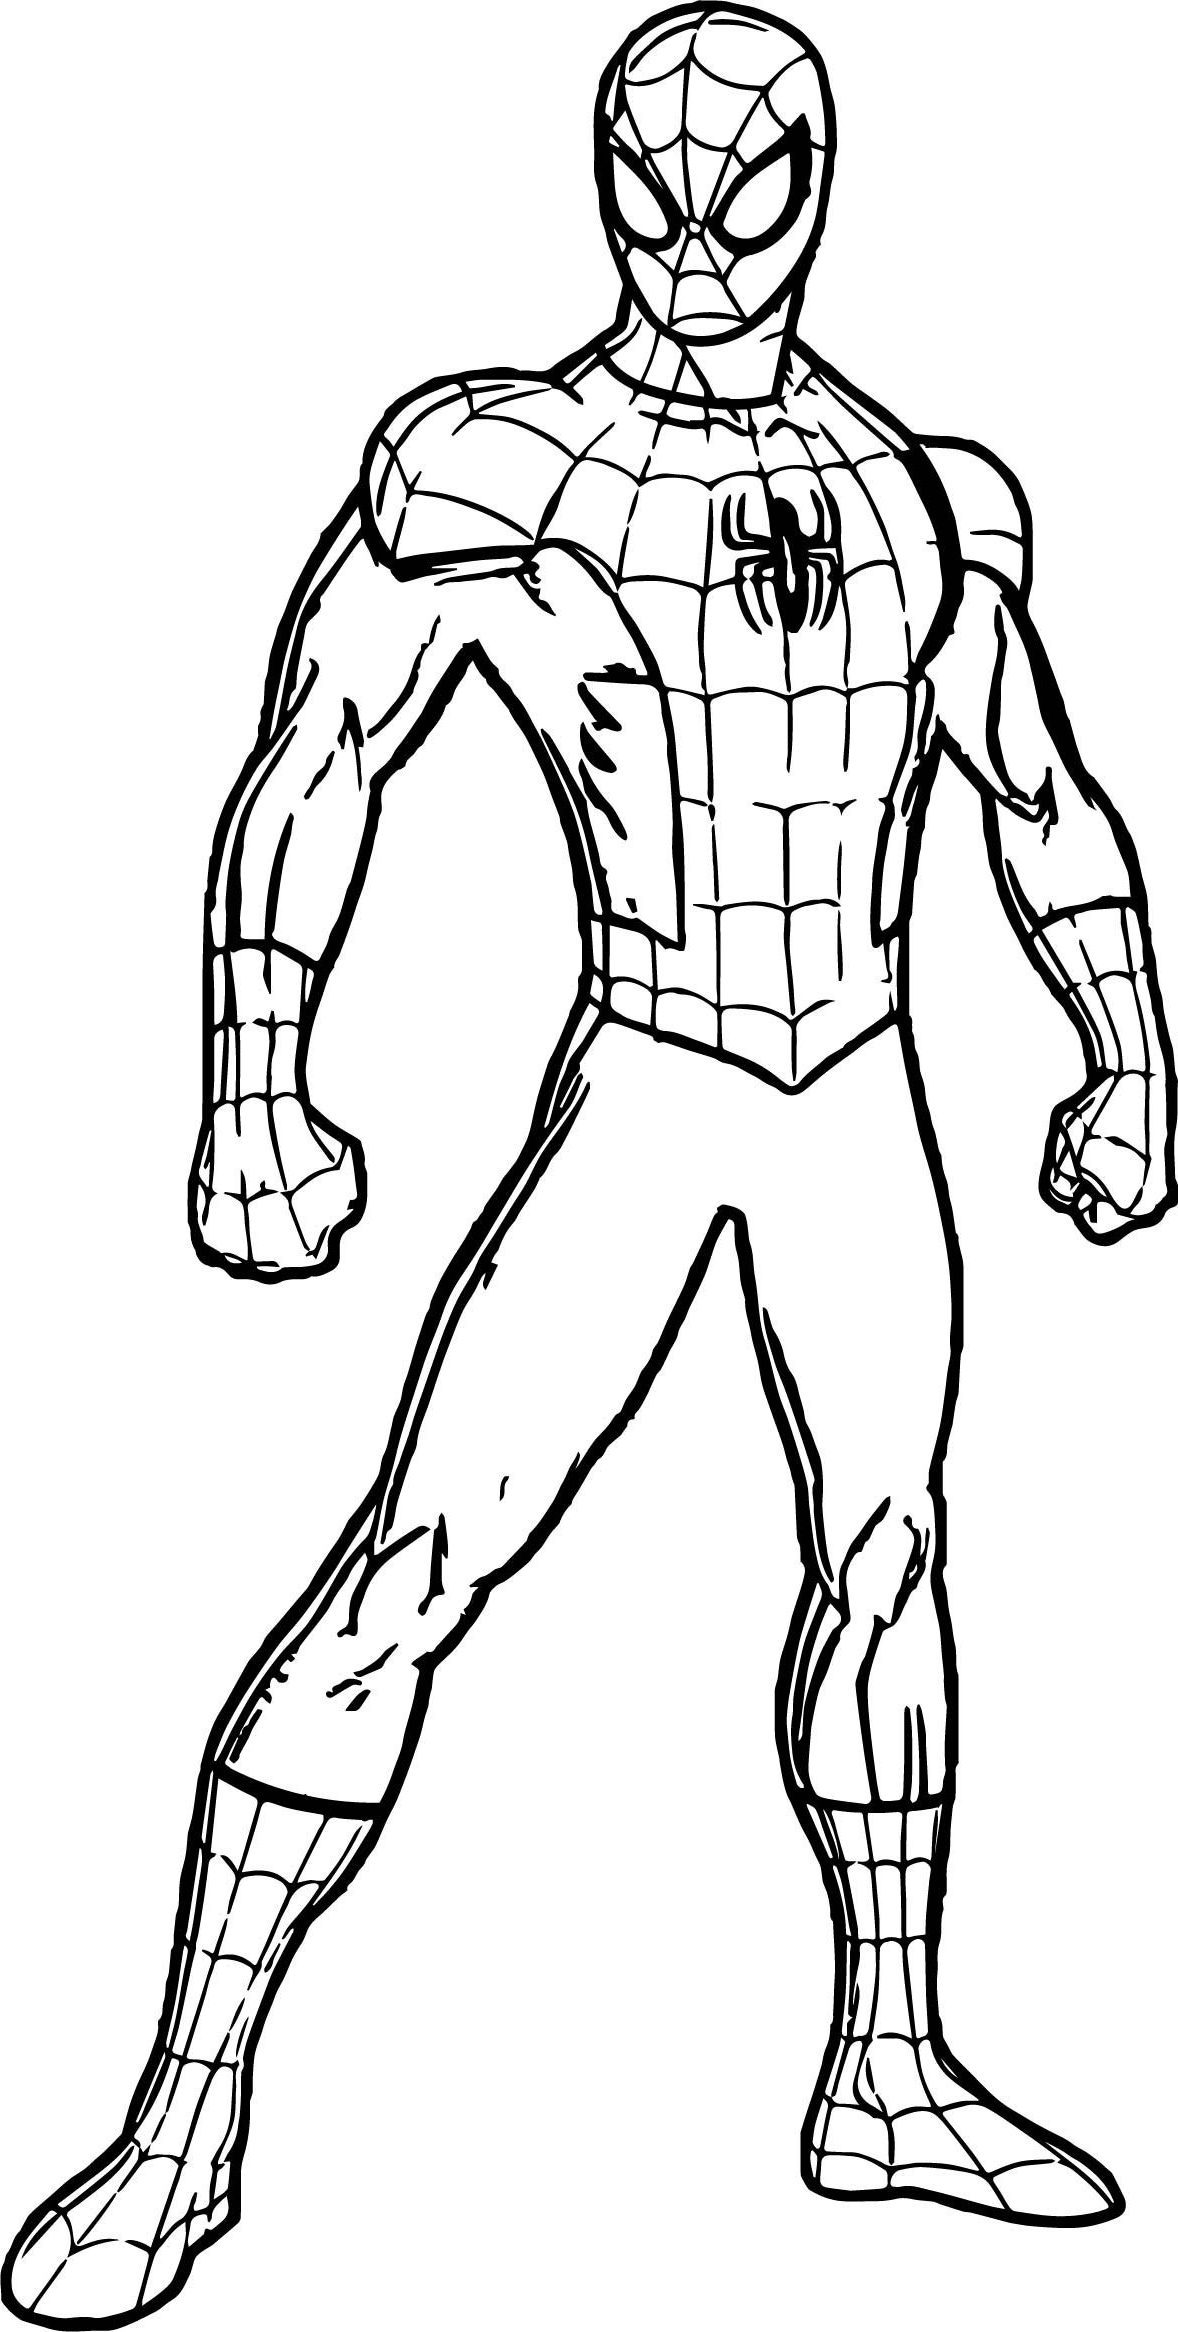 coloring spiderman color spiderman free to color for kids spiderman kids coloring coloring spiderman color